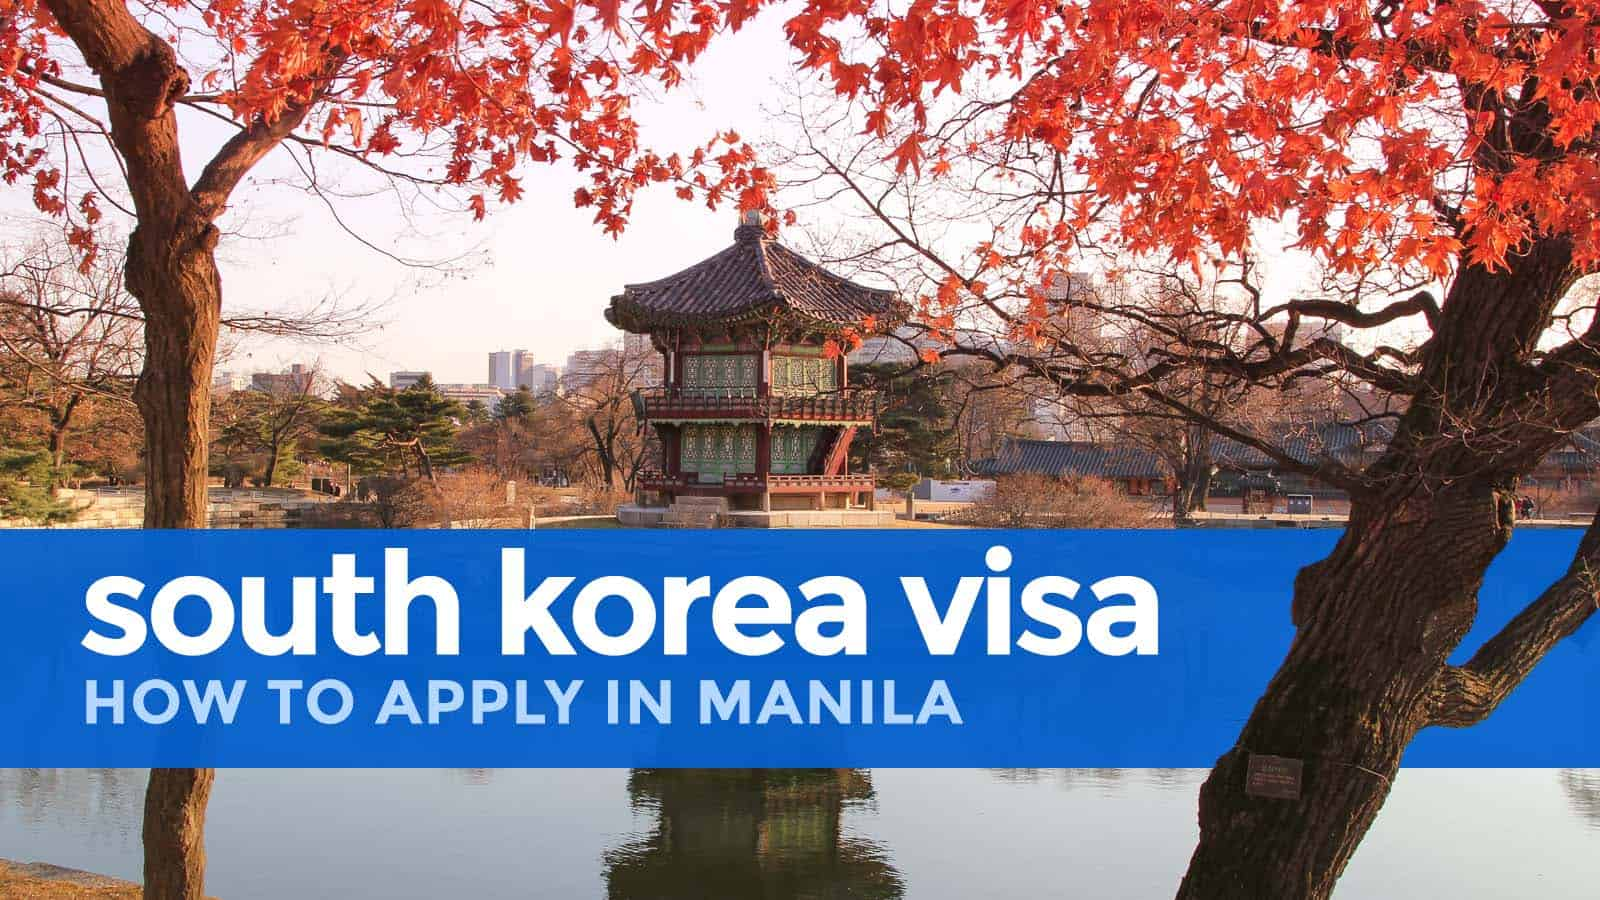 About South Korea How To Apply For A South Korea Visa In Cebu The Poor Traveler